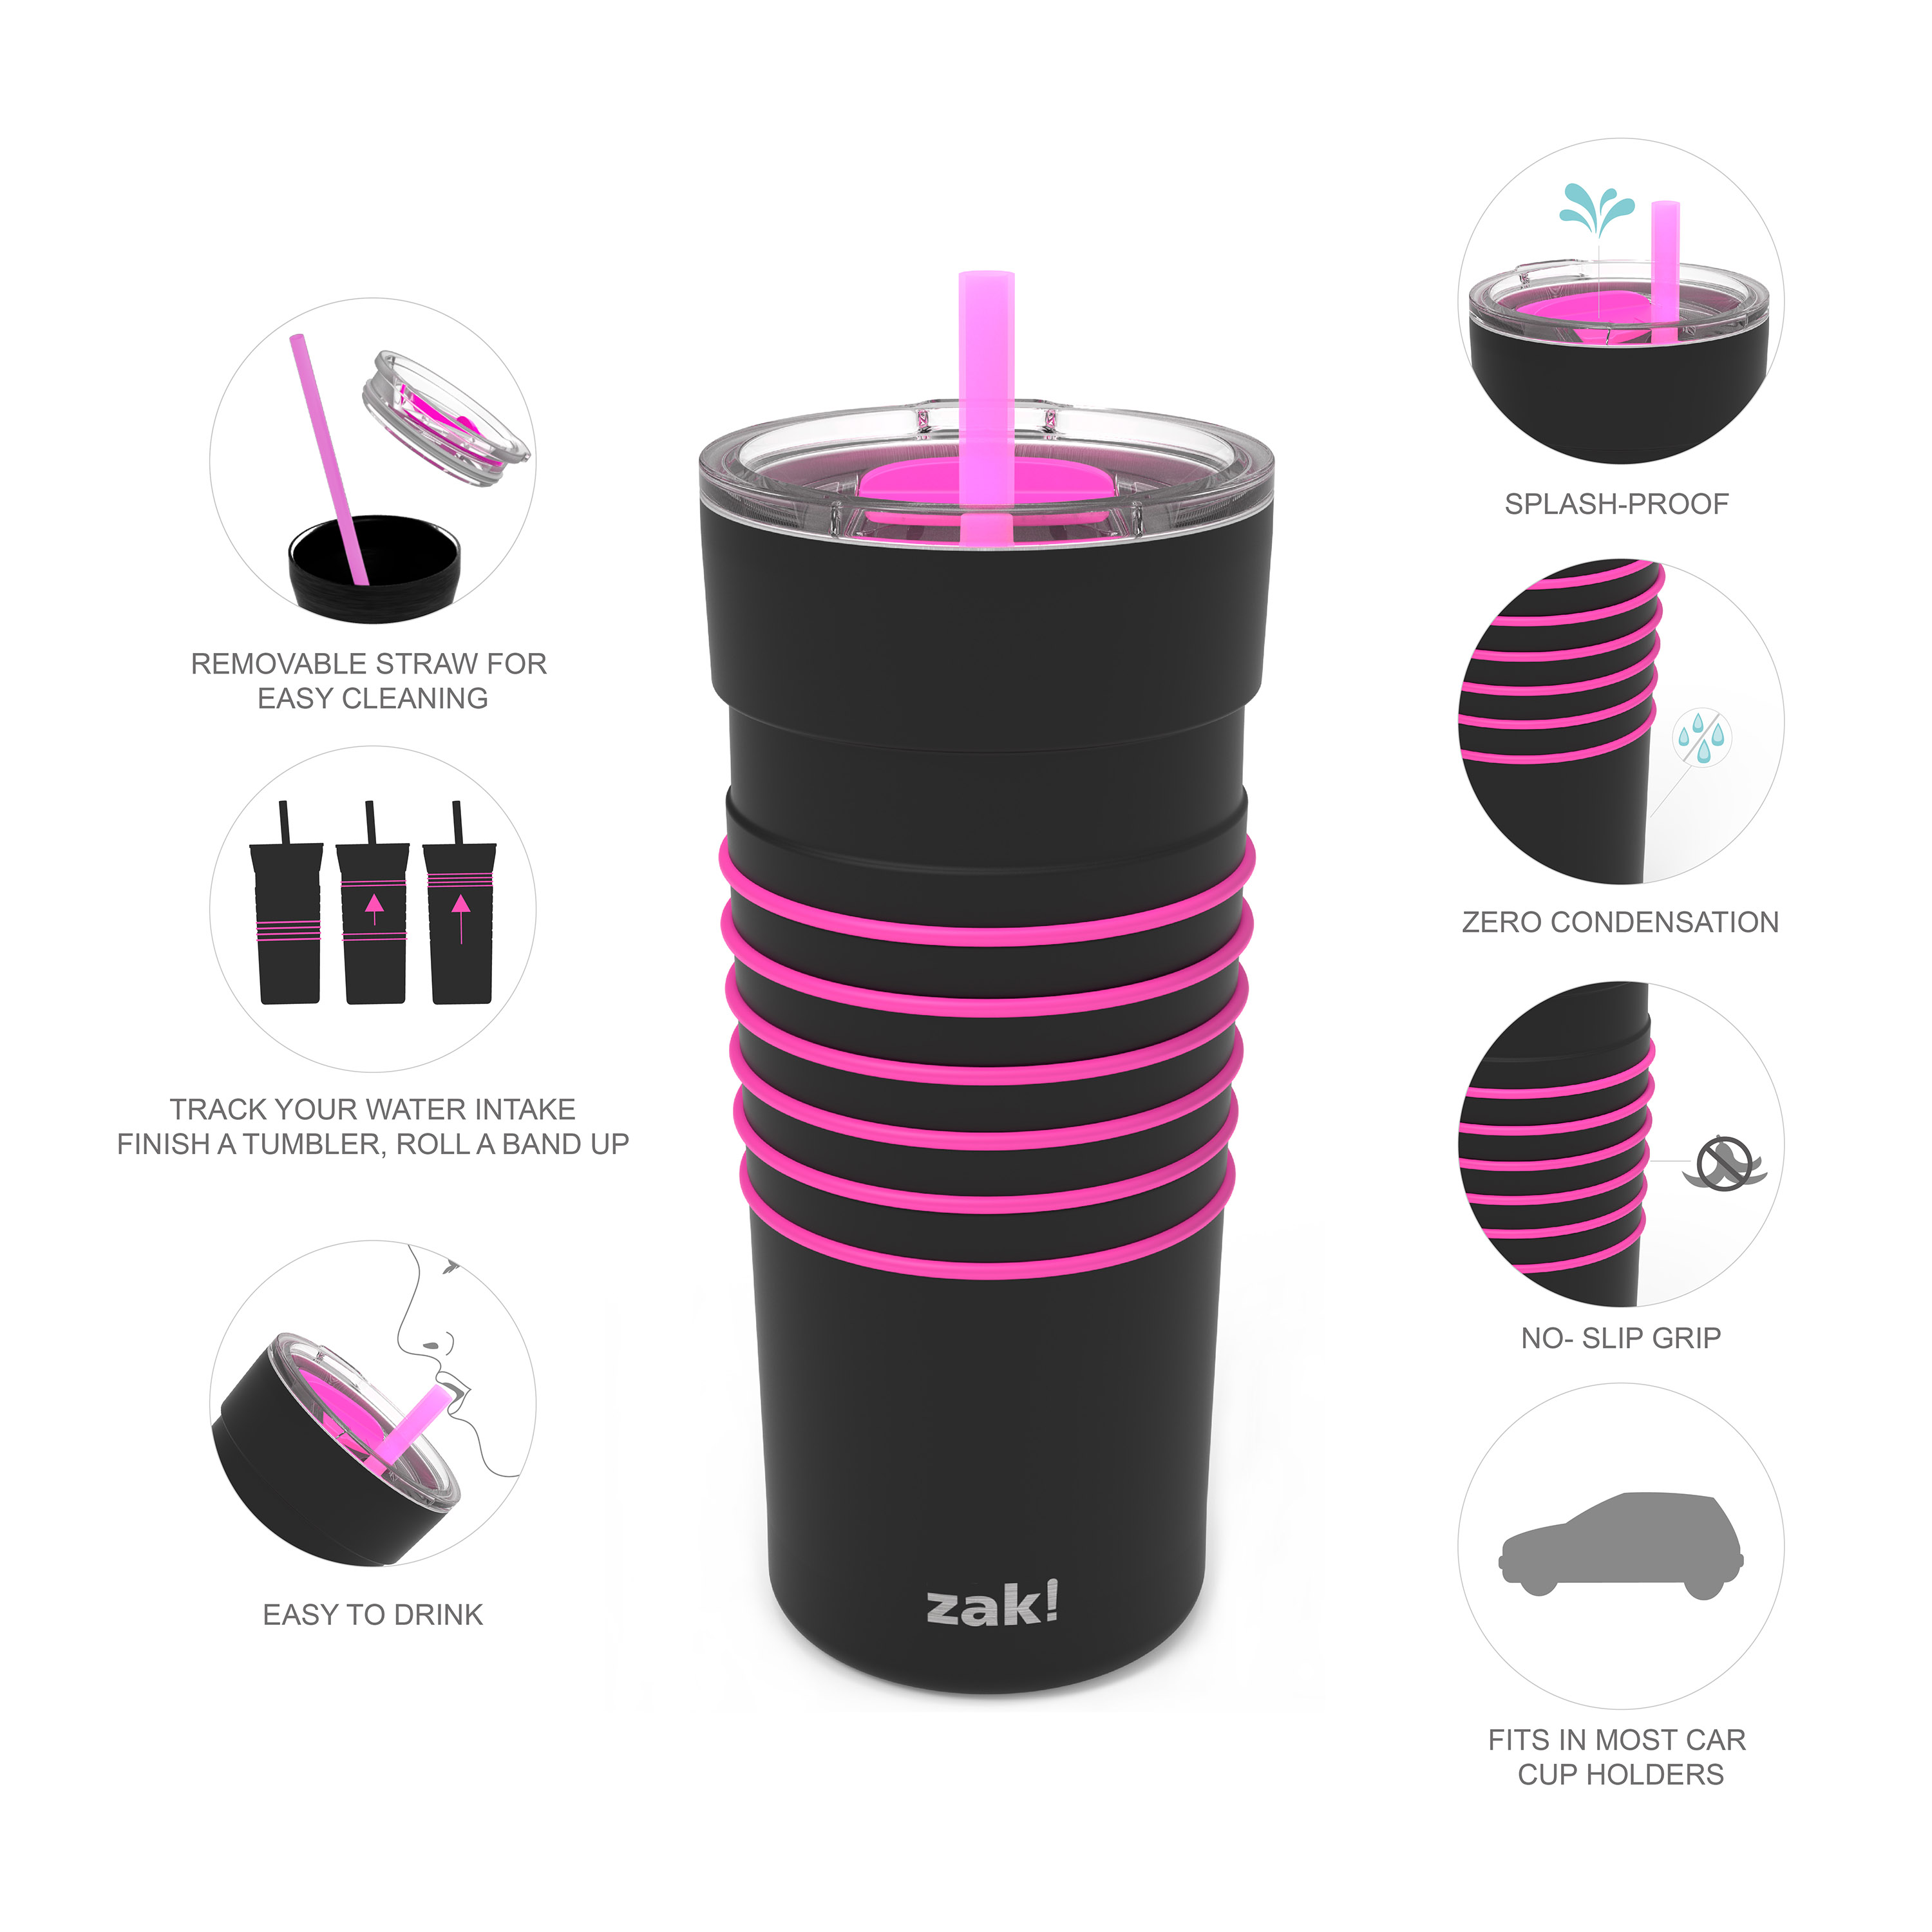 HydraTrak 20 ounce Vacuum Insulated Stainless Steel Tumbler, Black with Pink Rings slideshow image 3